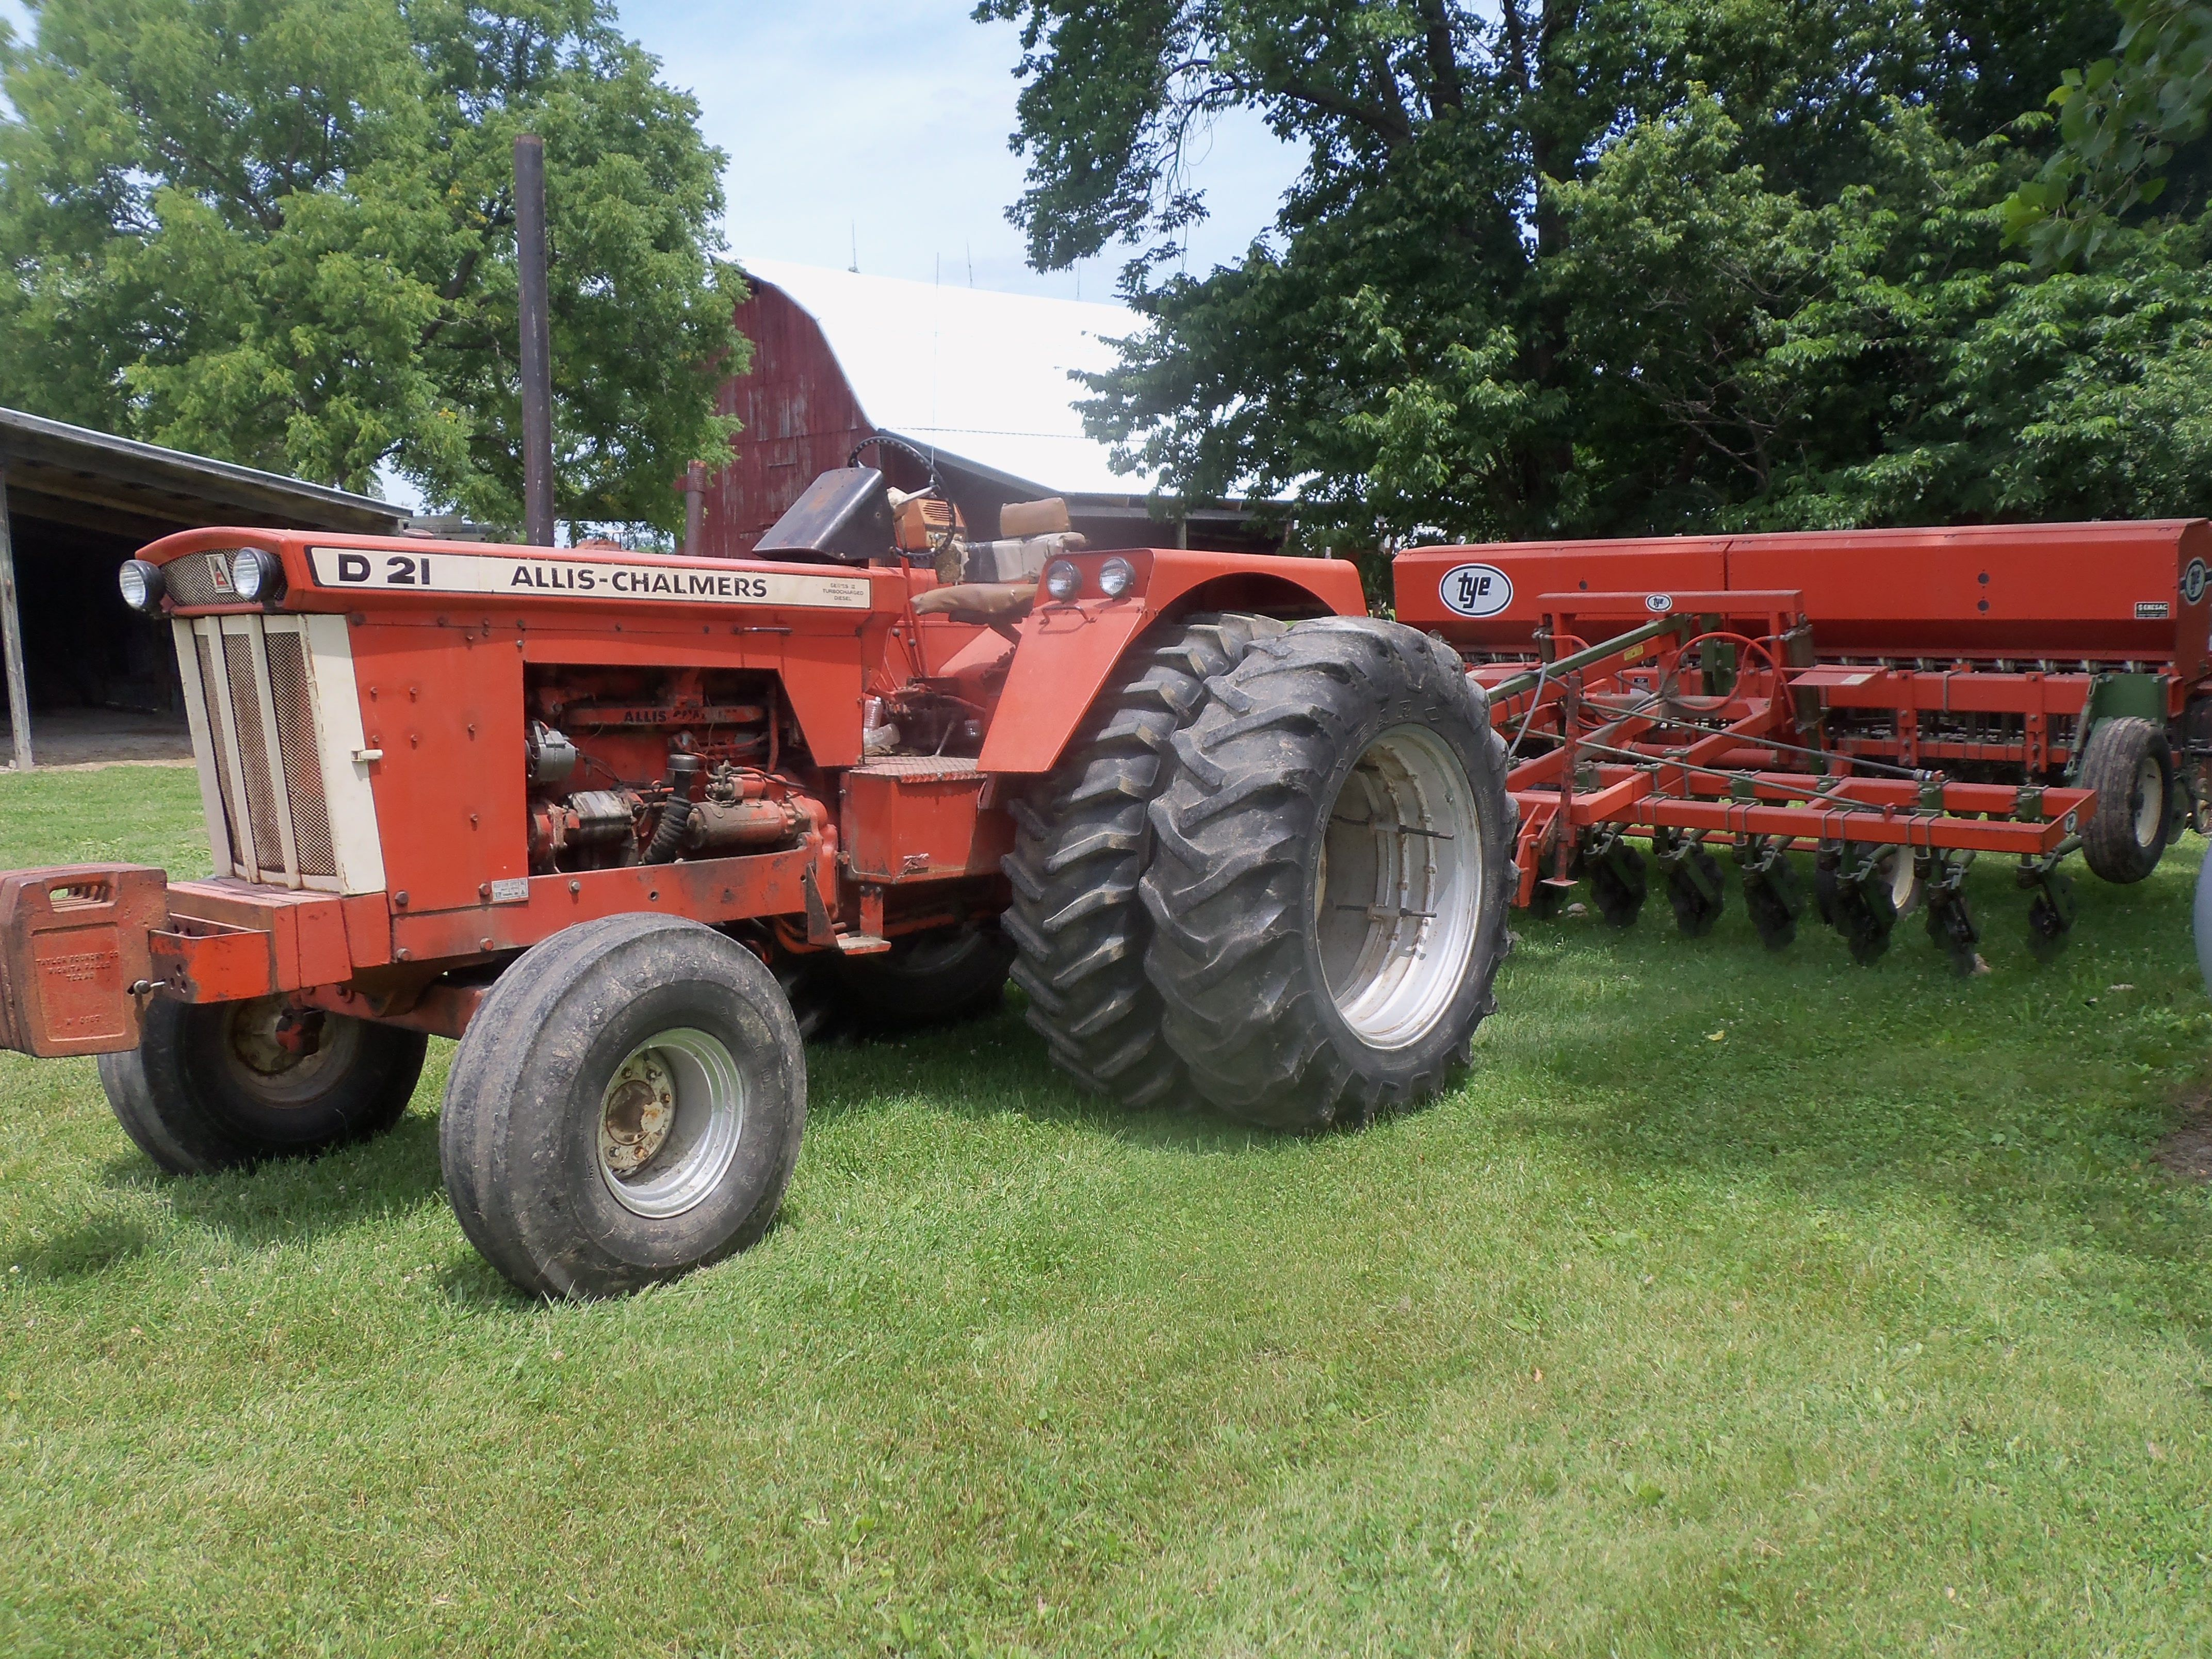 Allis Chalmers D21 Series 2 hooked to Tye soybean planter ...